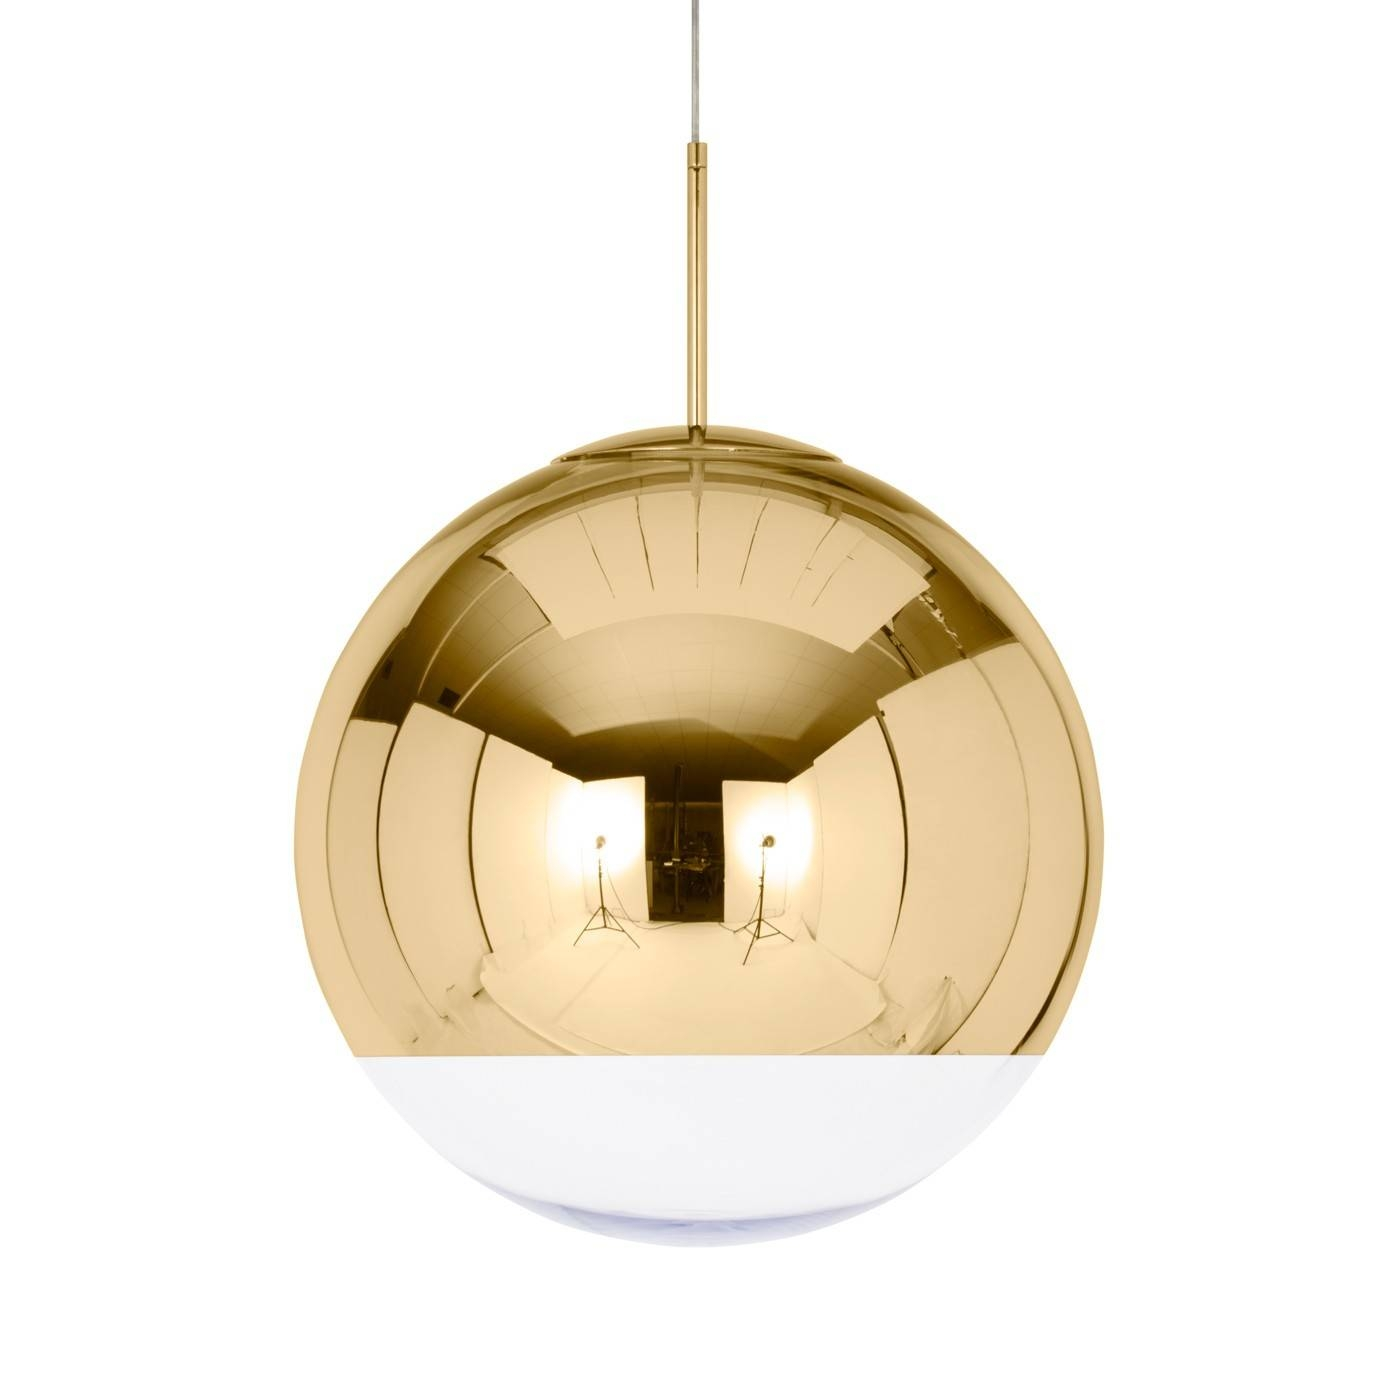 Mirror Ball Pendant Light Pertaining To Ceiling Light Mirrors (View 11 of 15)